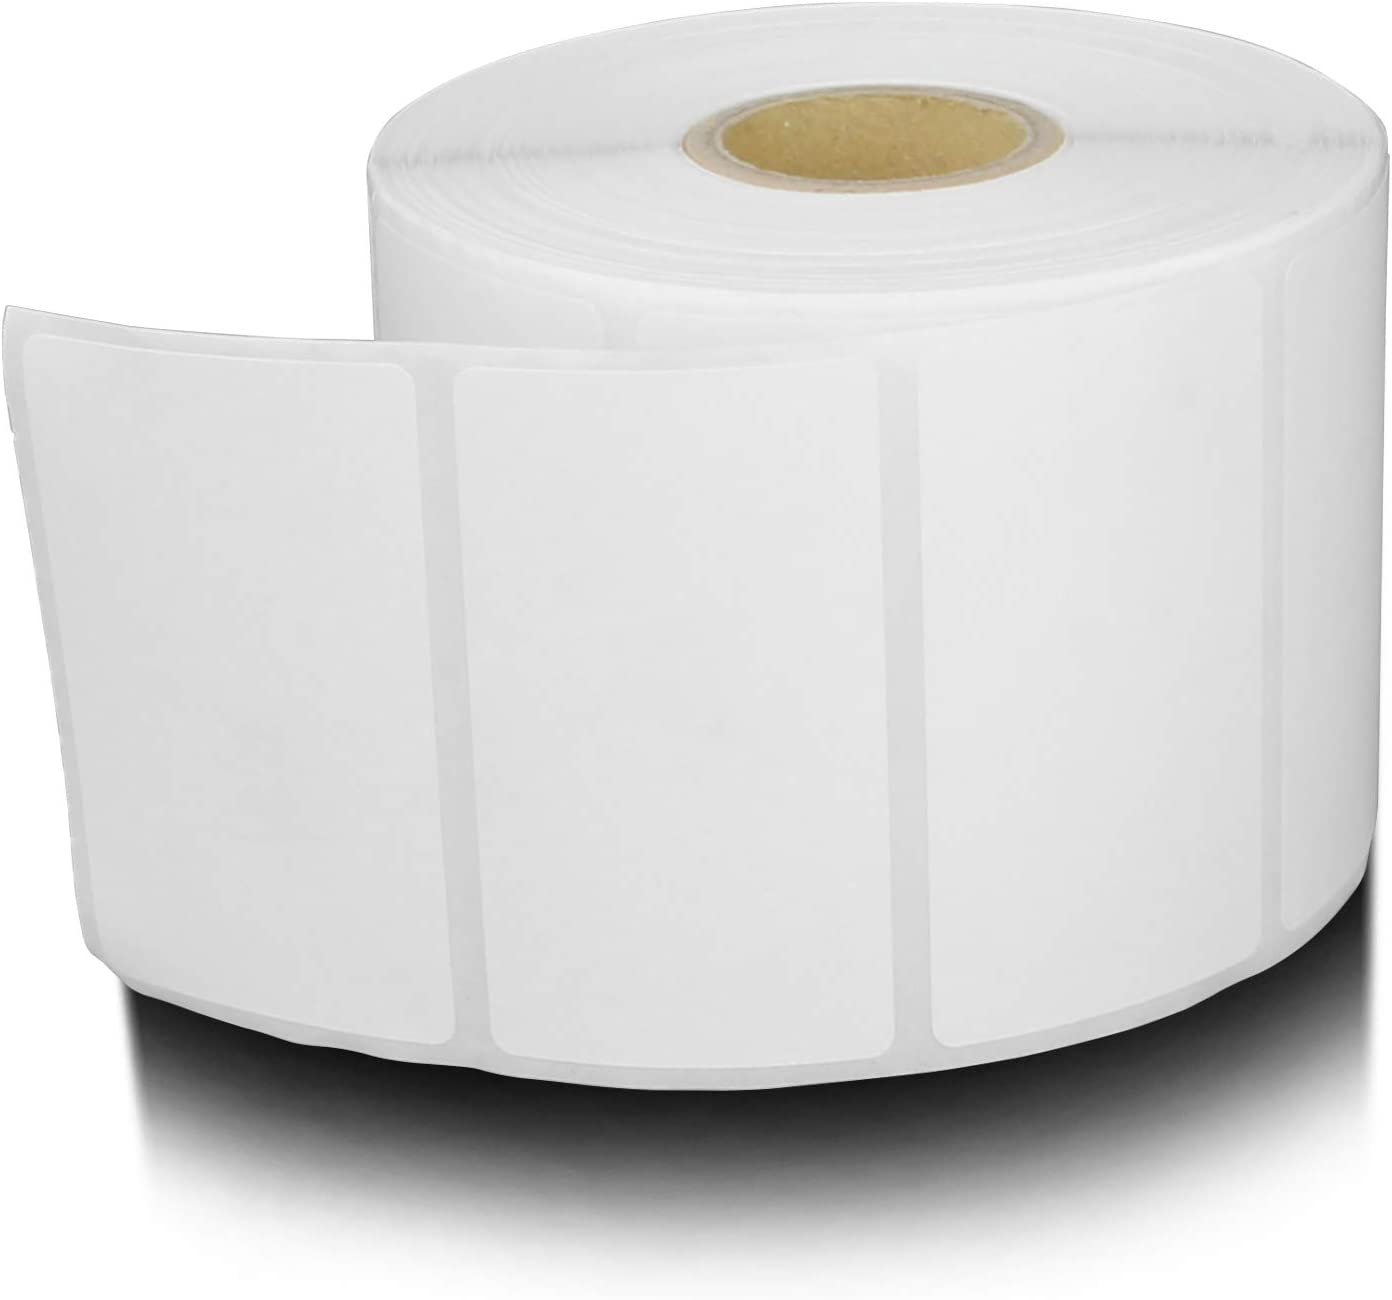 33 Rolls // 2350 Labels per Roll 1.5 x 0.5 inch GOLEM GUARD Direct Thermal Labels Compatible with Zebra for LP2824 LP2824Z TLP2824 TLP2824Z LP2844 Printers